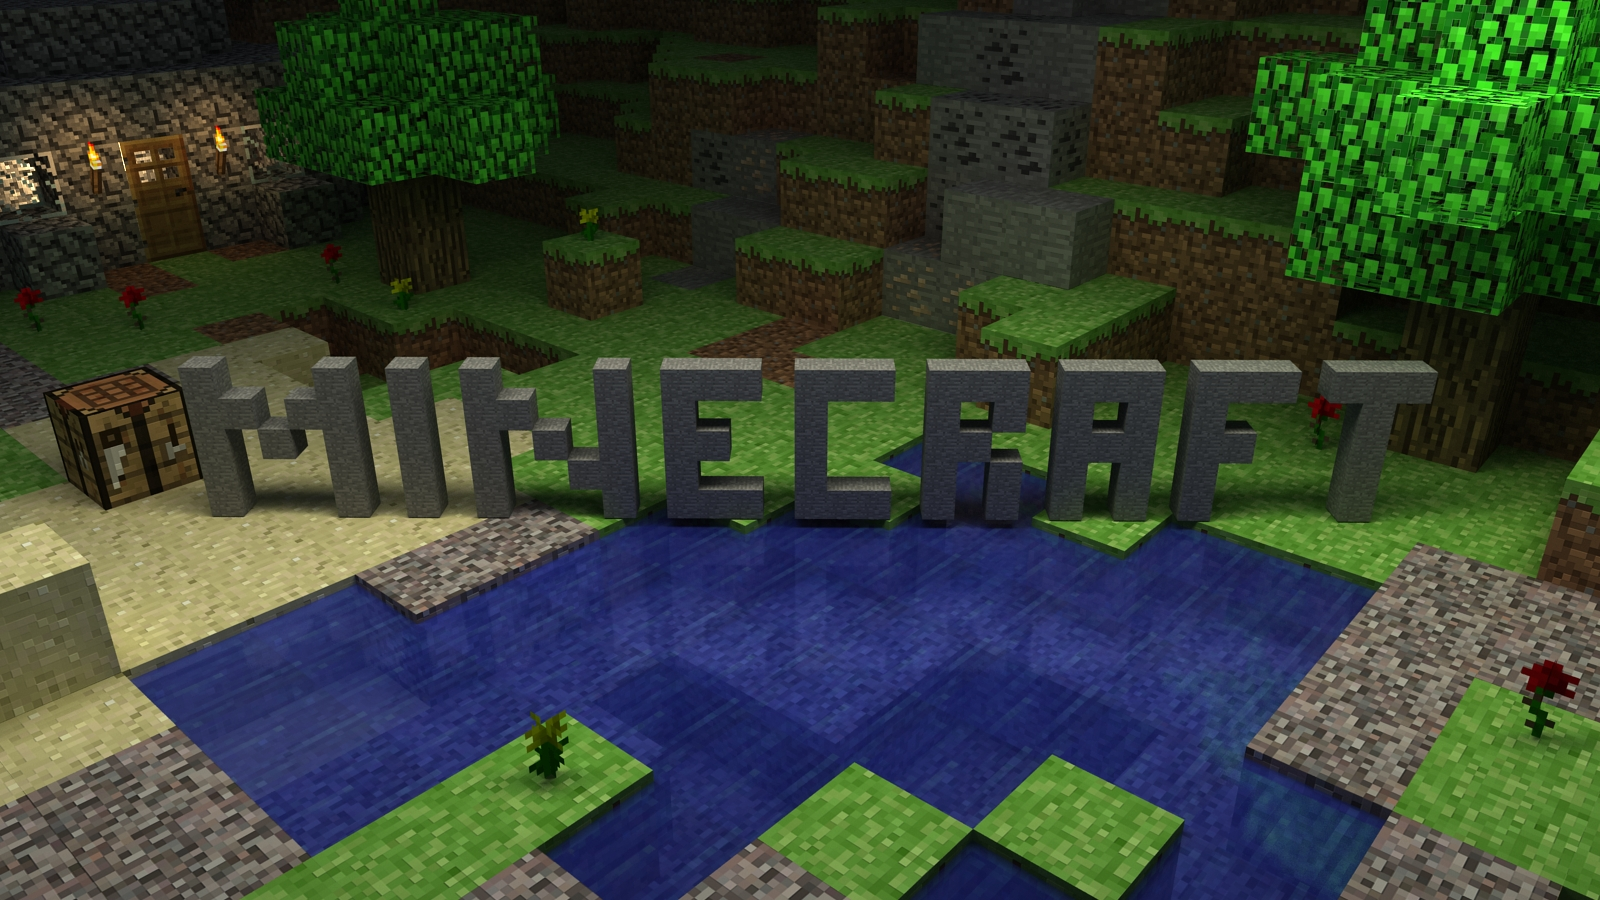 Minecraft Wallpaper LOLd Wallpaper   Funny Pictures   Funny Videos 1600x900